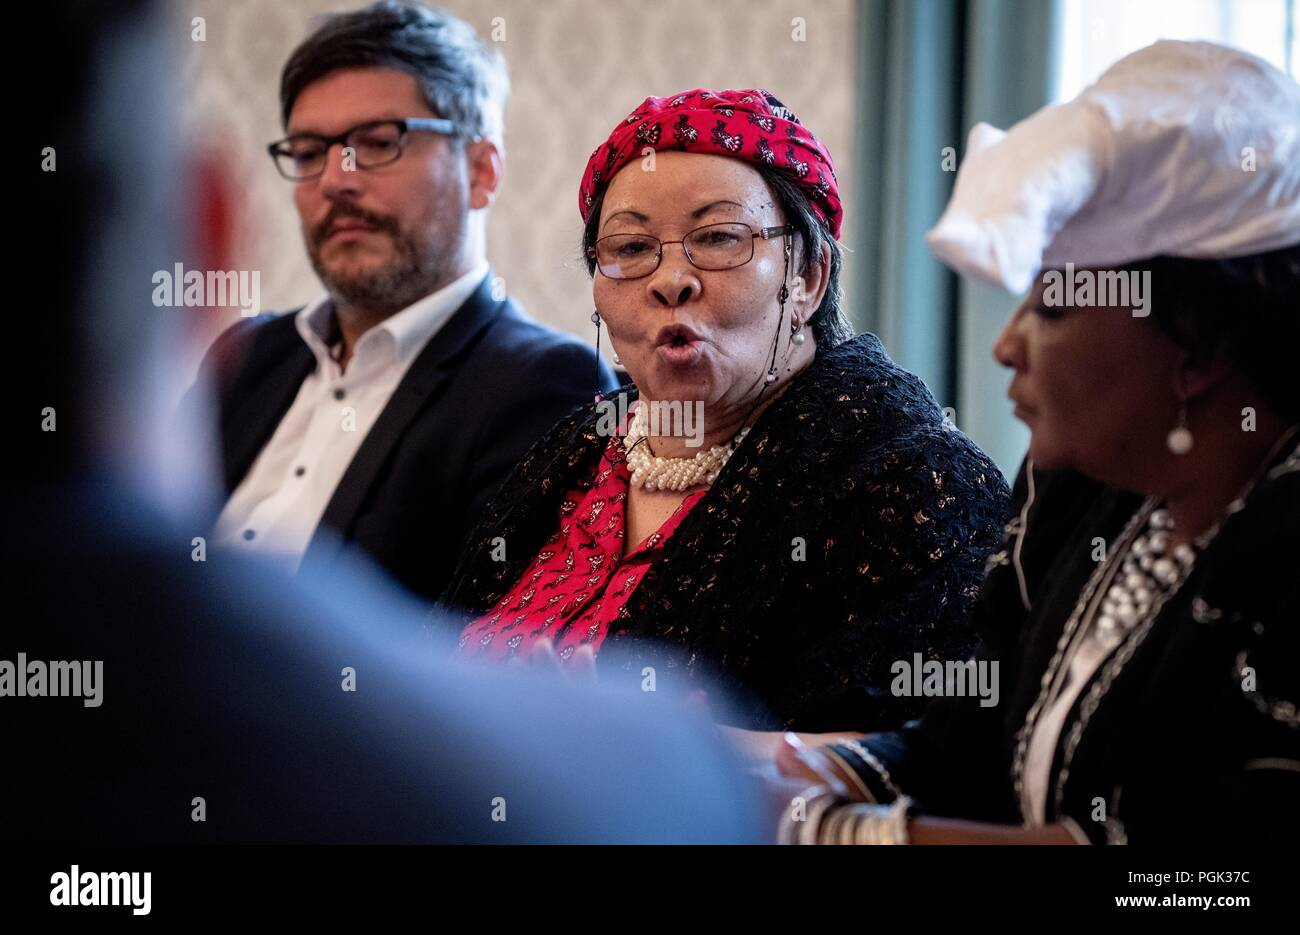 Germany, Berlin. 27th Aug, 2018. Dirk Behrendt (l, Alliance 90/The Greens), Berlin Senator of Justice, attends a press conference with a delegation of Ovaherero and Nama from Namibia, with Ida Hoffmann (M), Member of Parliament and Chair of the Nama Genocide Technical Committee in Namibia, and Esther Utjiua Muinjangue (r), Chair of the Ovaherero Genocide Foundation in Namibia. This week, stolen remains of Herero and Nama murdered in the 1904-08 genocide are to be returned to a government delegation from Namibia. Credit: Kay Nietfeld/dpa/Alamy Live News - Stock Image